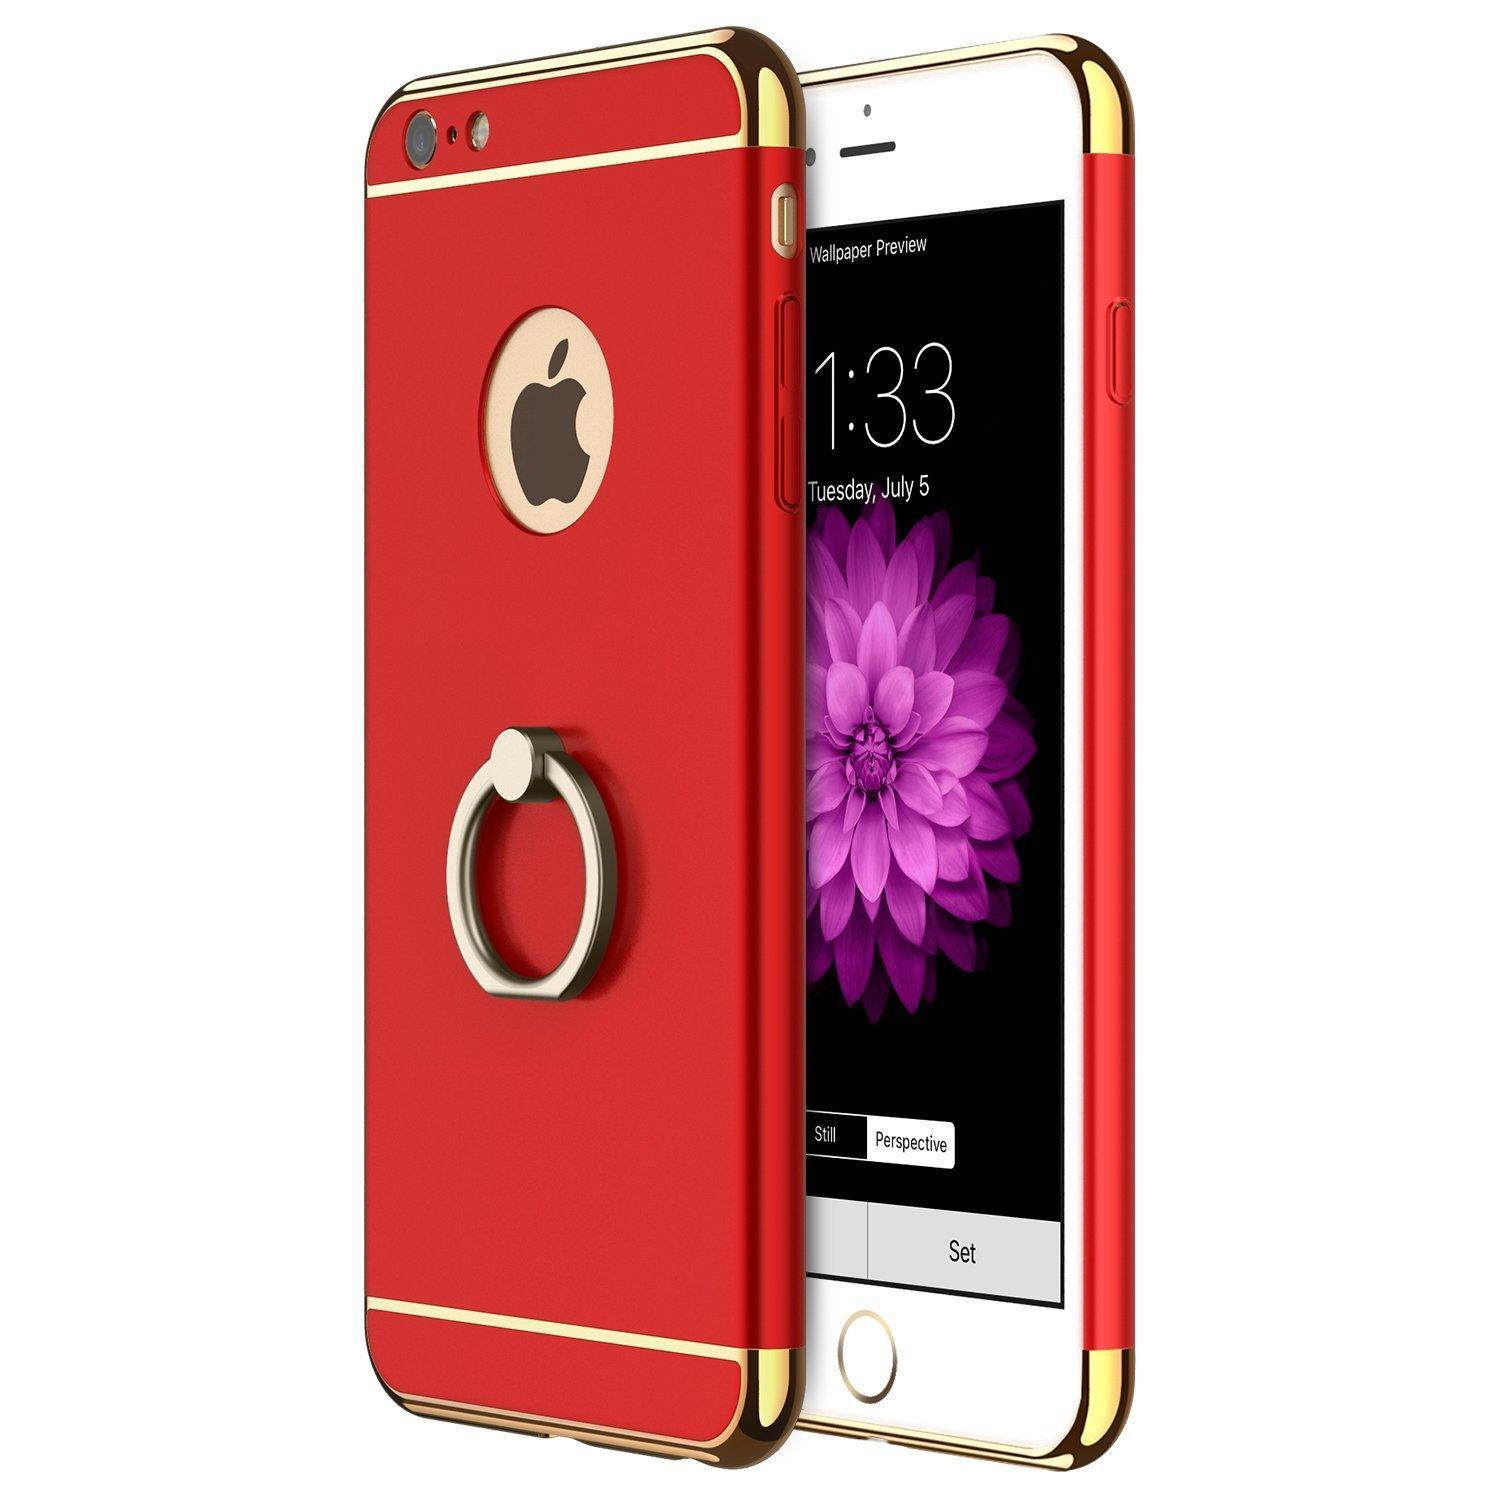 3 in 1 Ultra Thin Anti-Drop Scratch Resistant ShockproofElectroplate Frame Case .